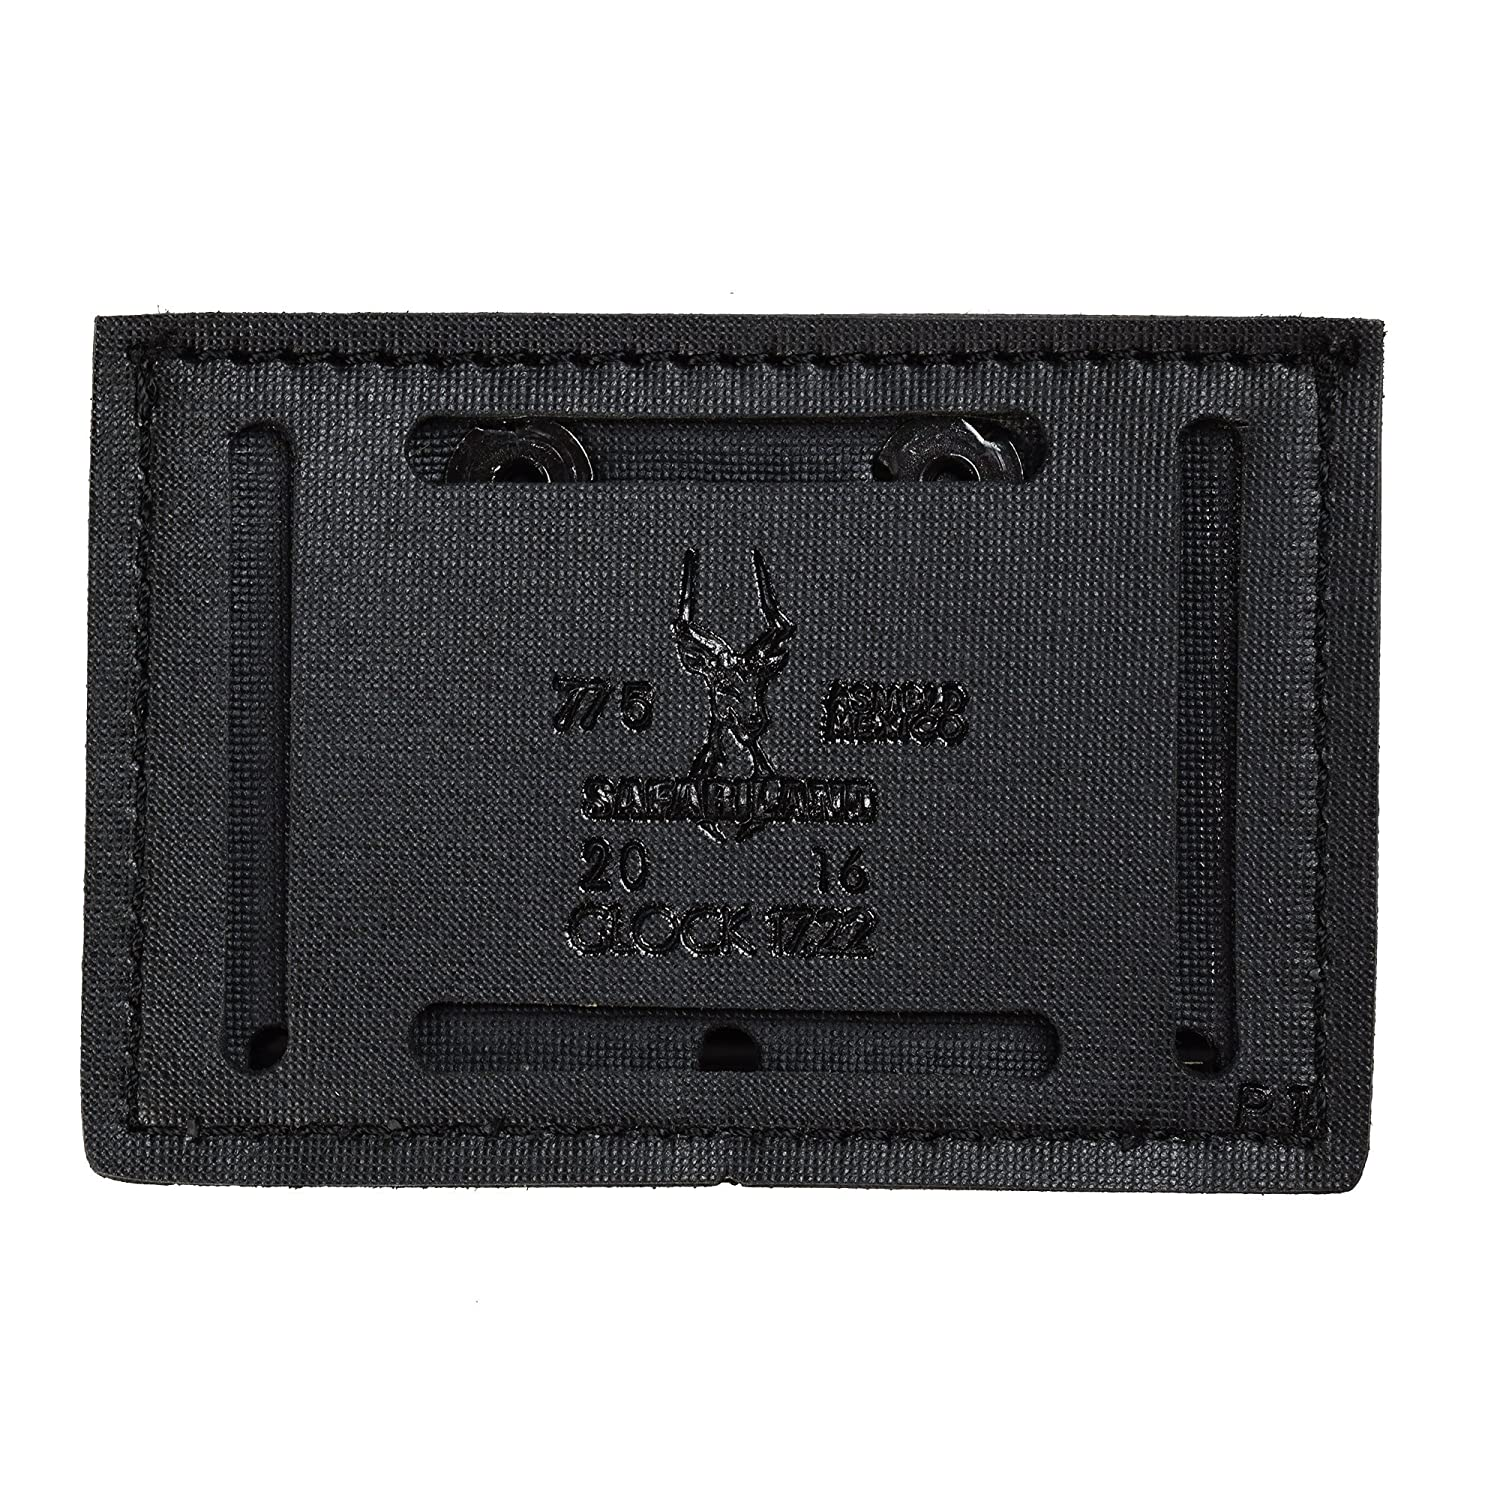 Stx Black by Safariland Duty Gear Safariland Duty Gear Glock 17 Open Top Slimline Triple Magazine Pouch